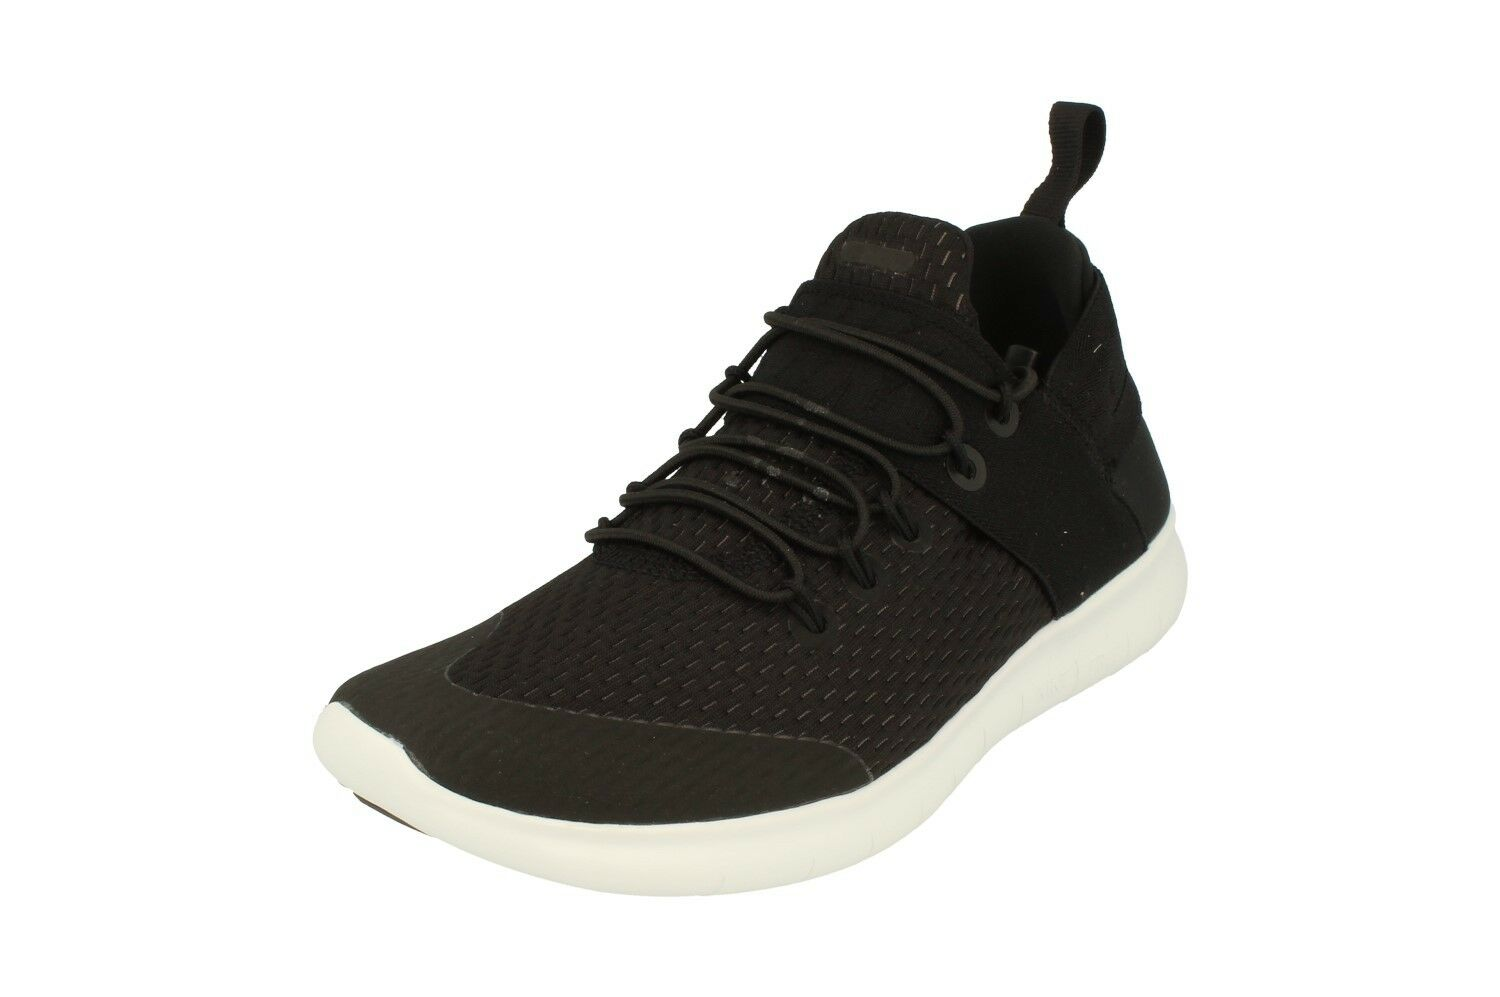 Nike Wo Hommes Hommes Hommes Free RN Cmtr 2018 Wo Hommes Running Trainers 880842 Baskets 003 4c9dba